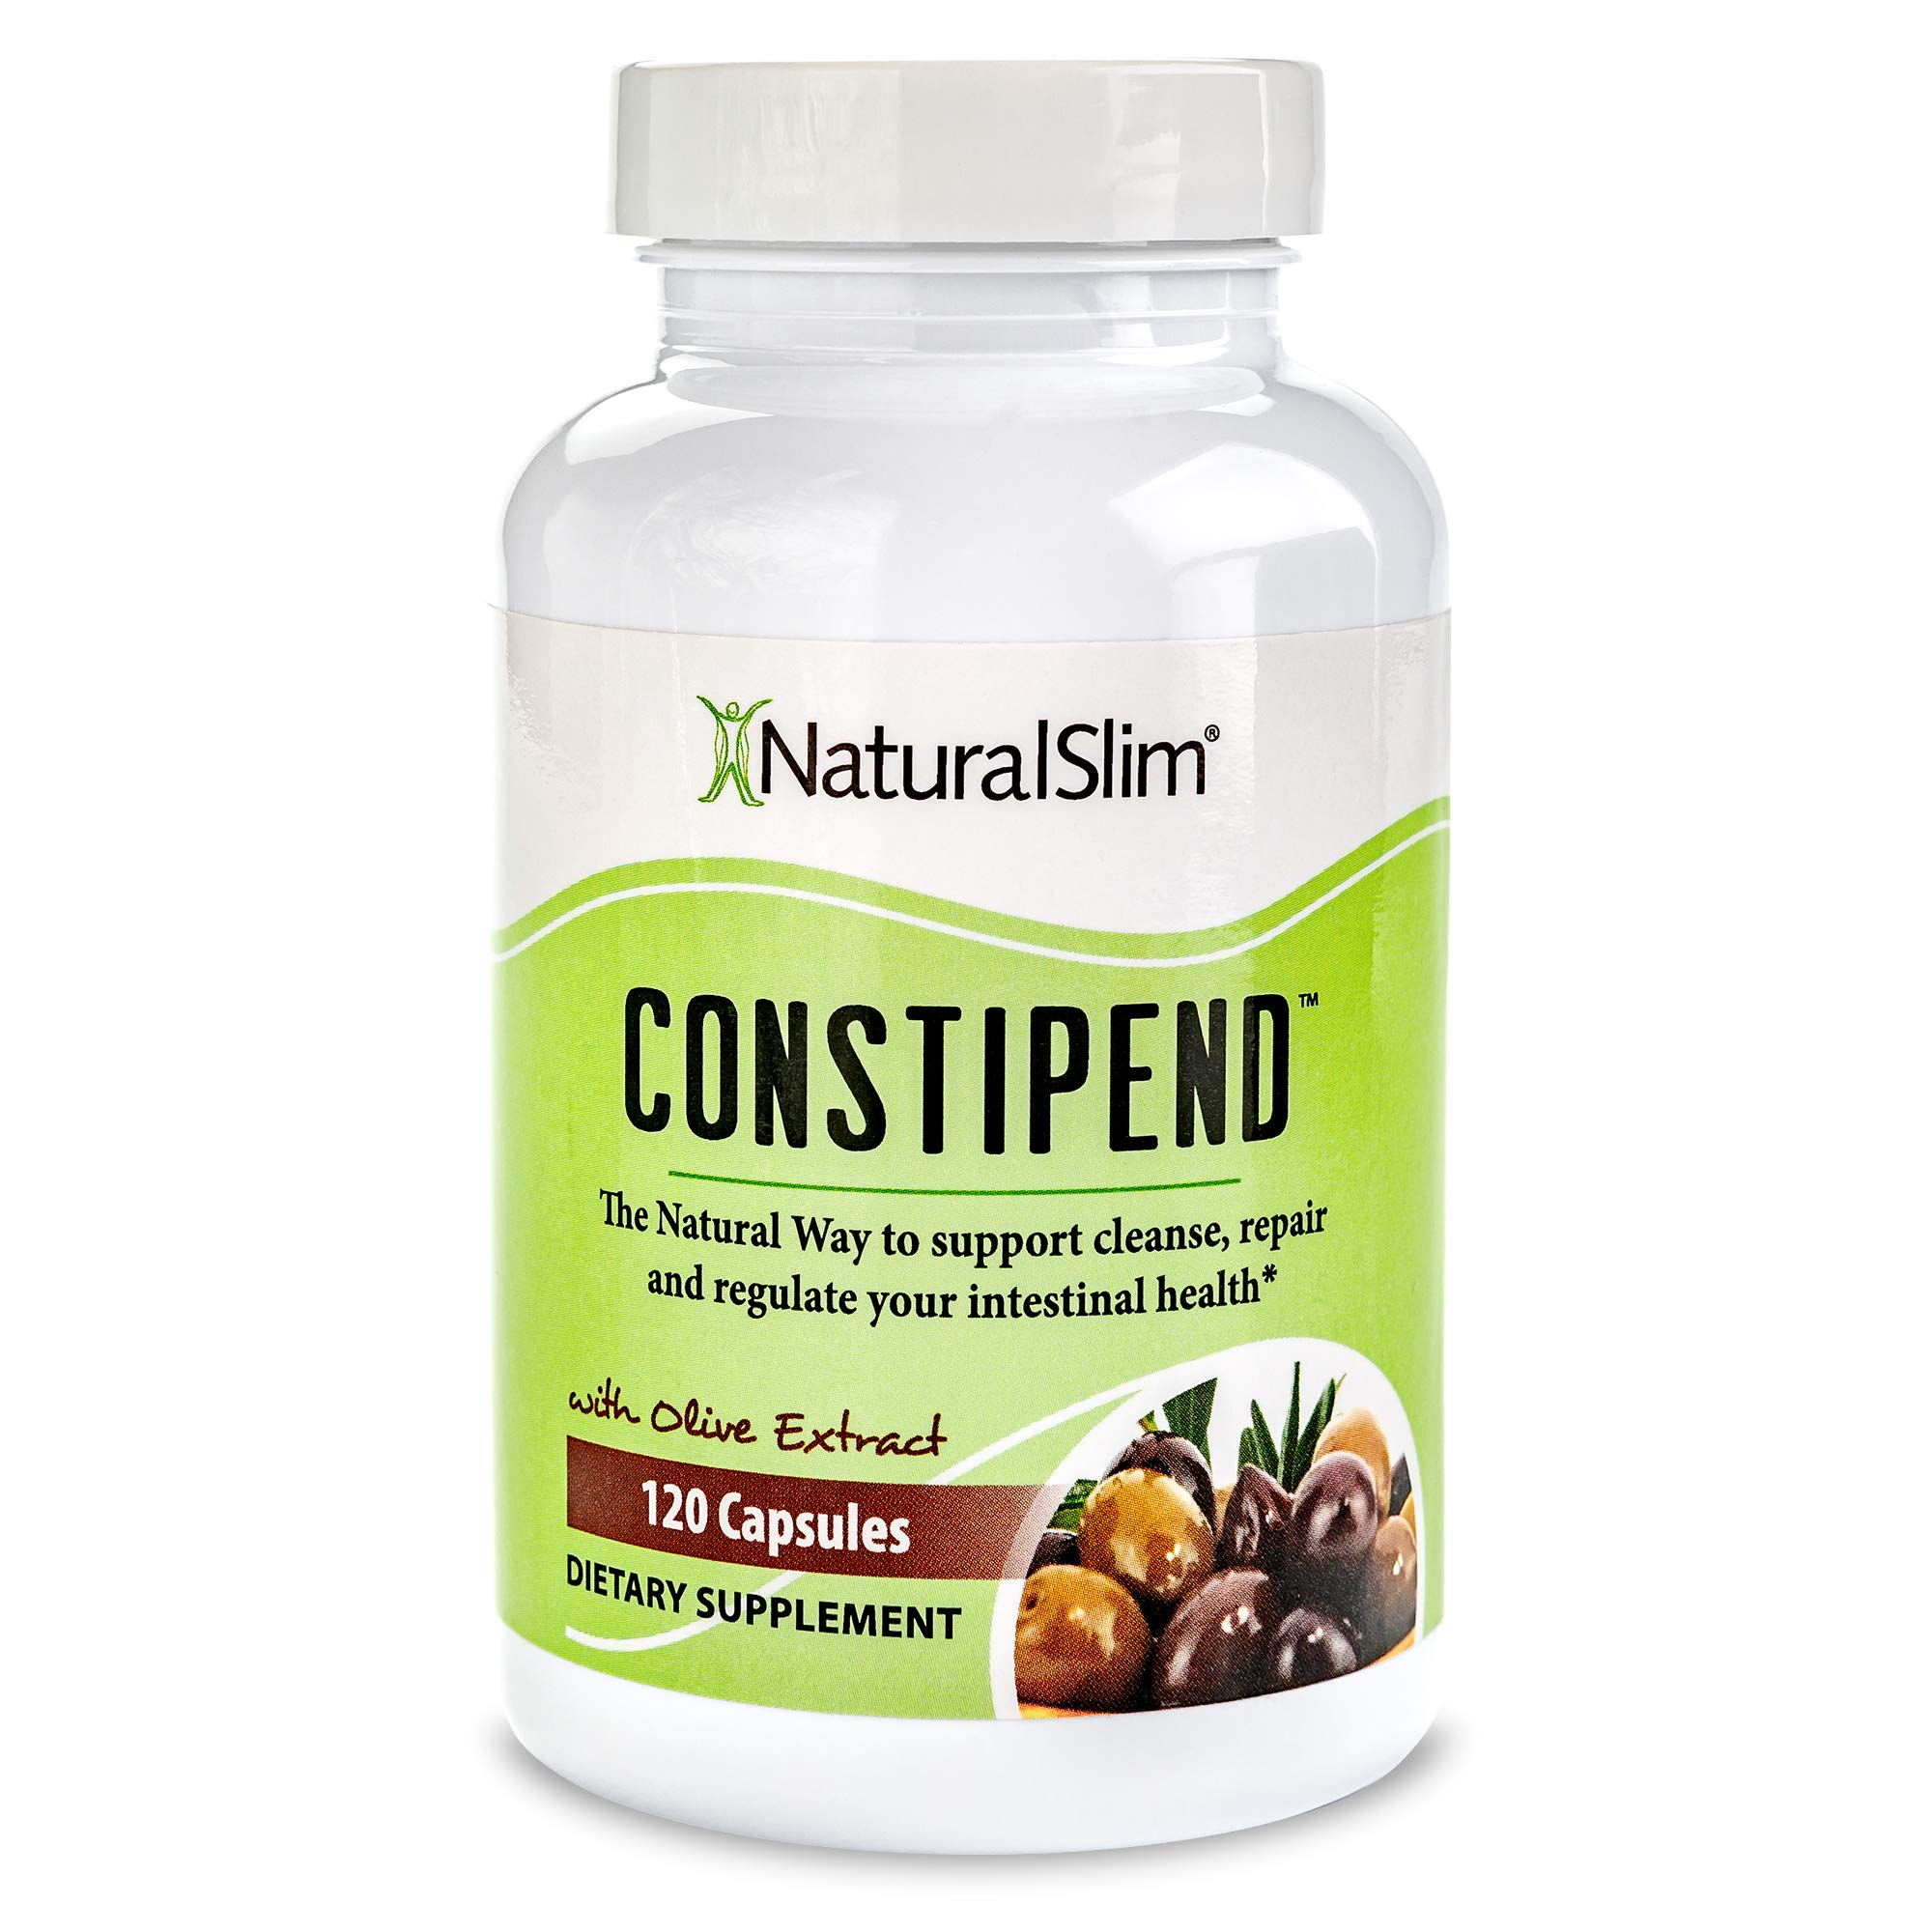 NaturalSlim Constipend - Constipation Relief, Colon Cleanse Supplement - Restores Healthy Magnesium Level, Better Digestion, Improved Metabolism, Support Weight Loss w/ Olive Extract - 120 Capsules